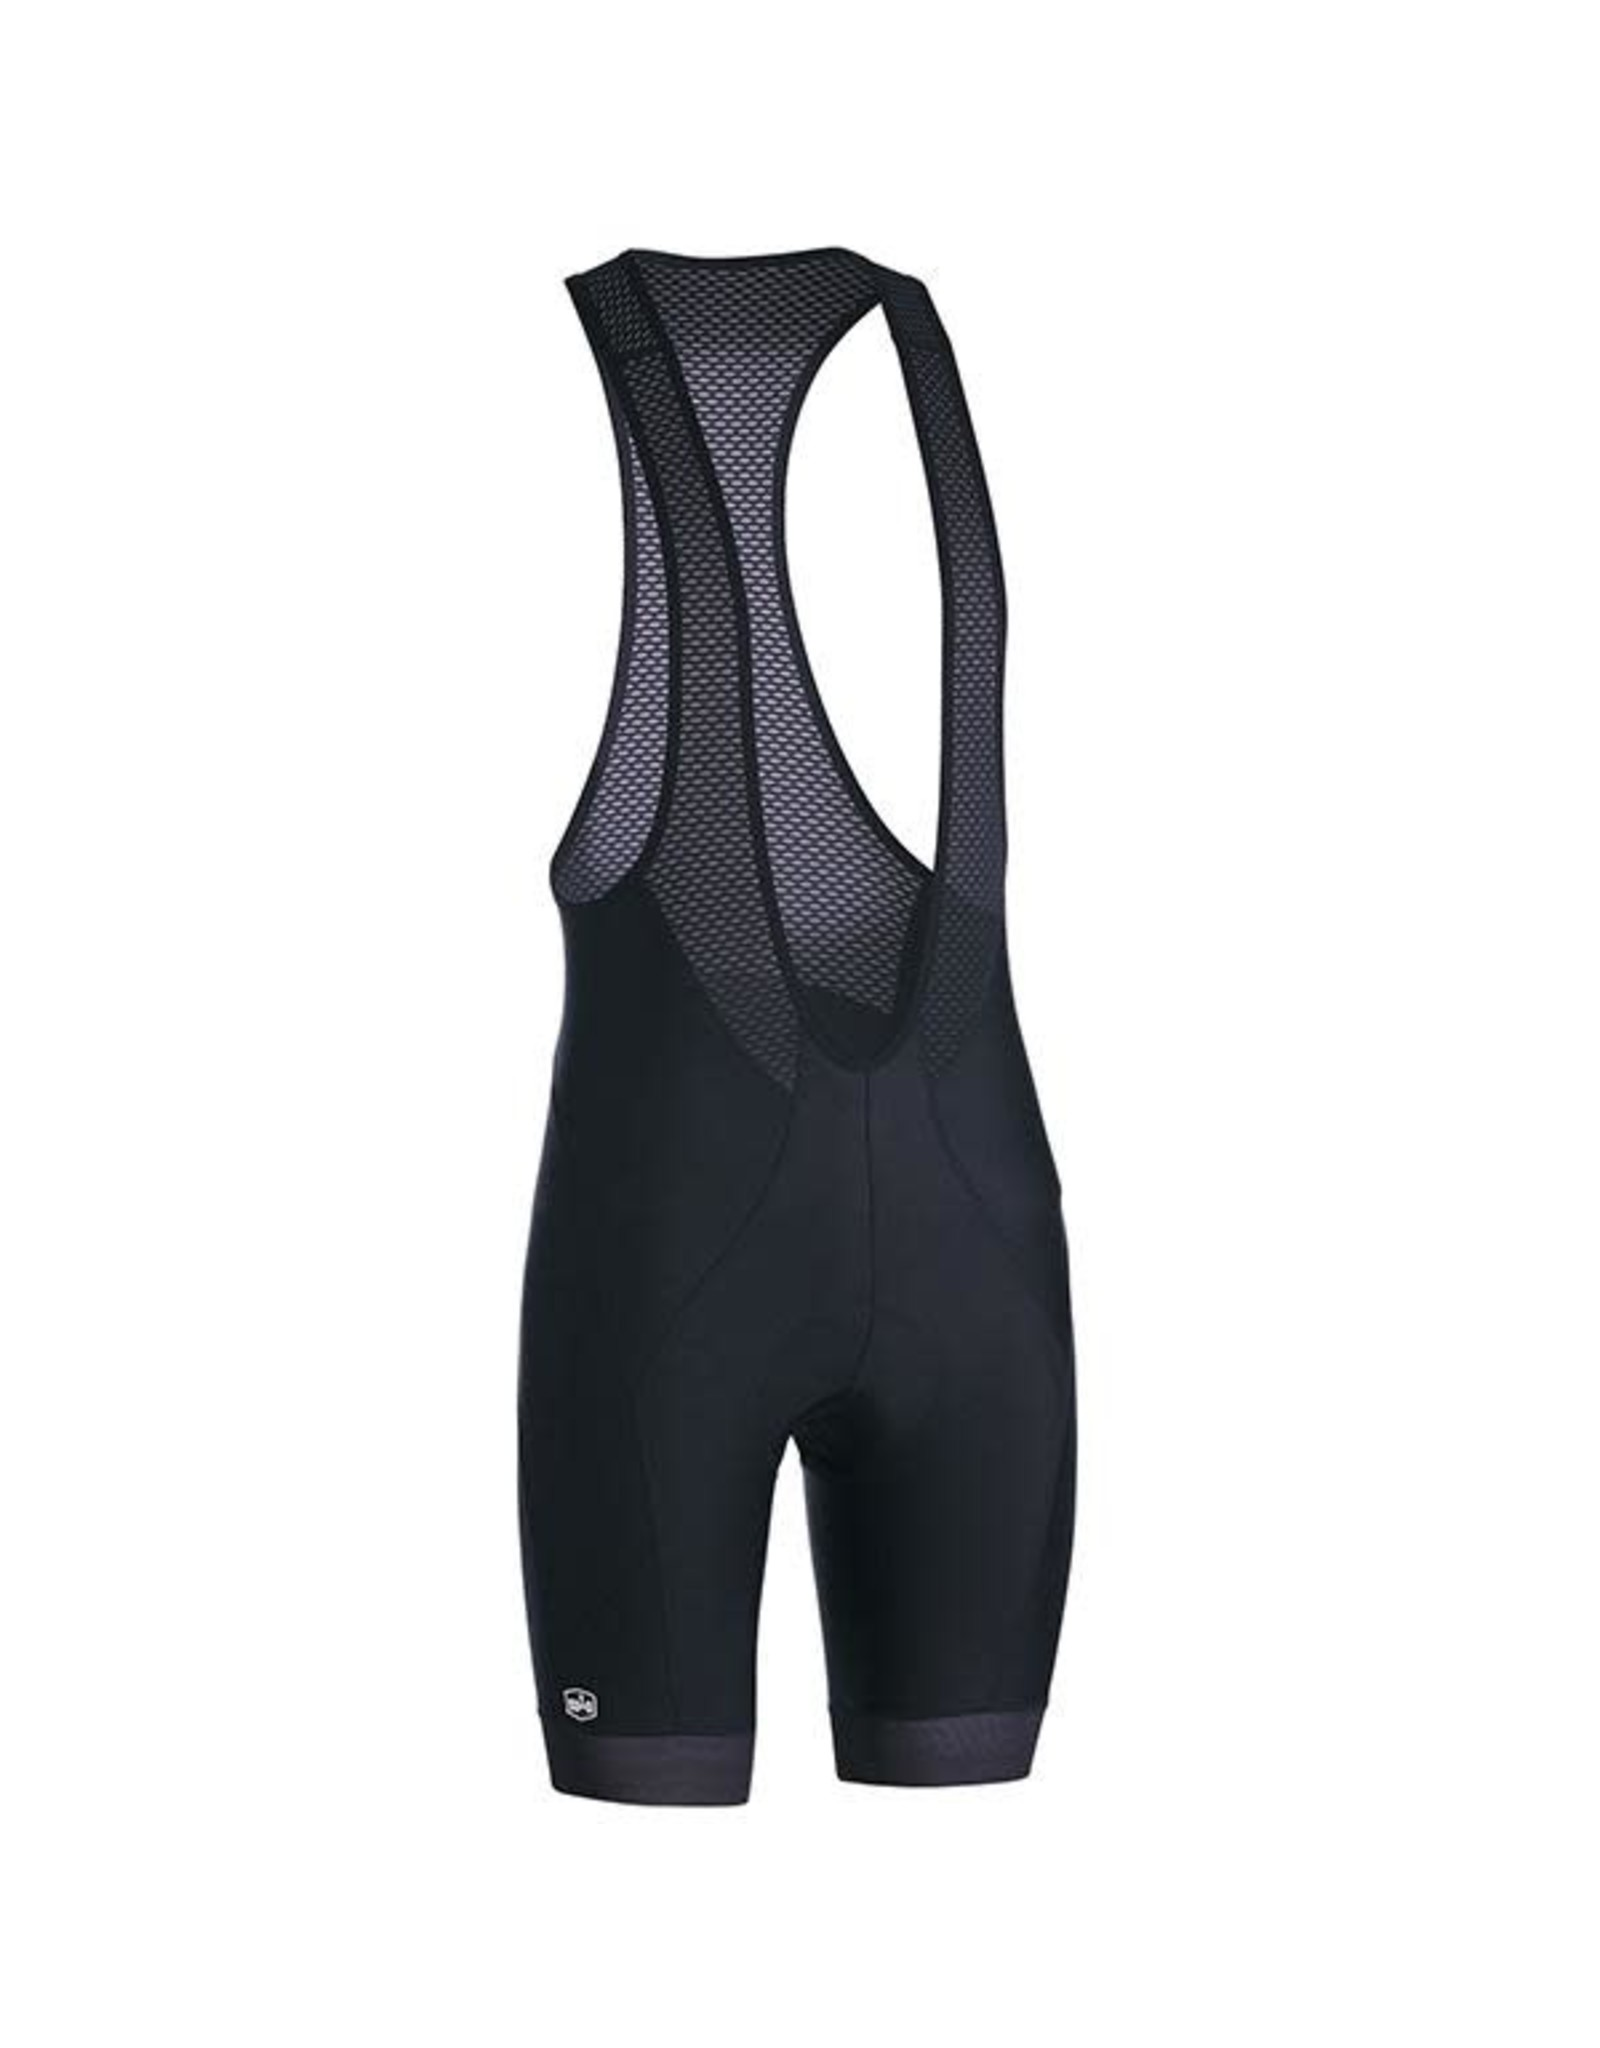 SOLO Solo Comp Bib Shorts Knicks Black